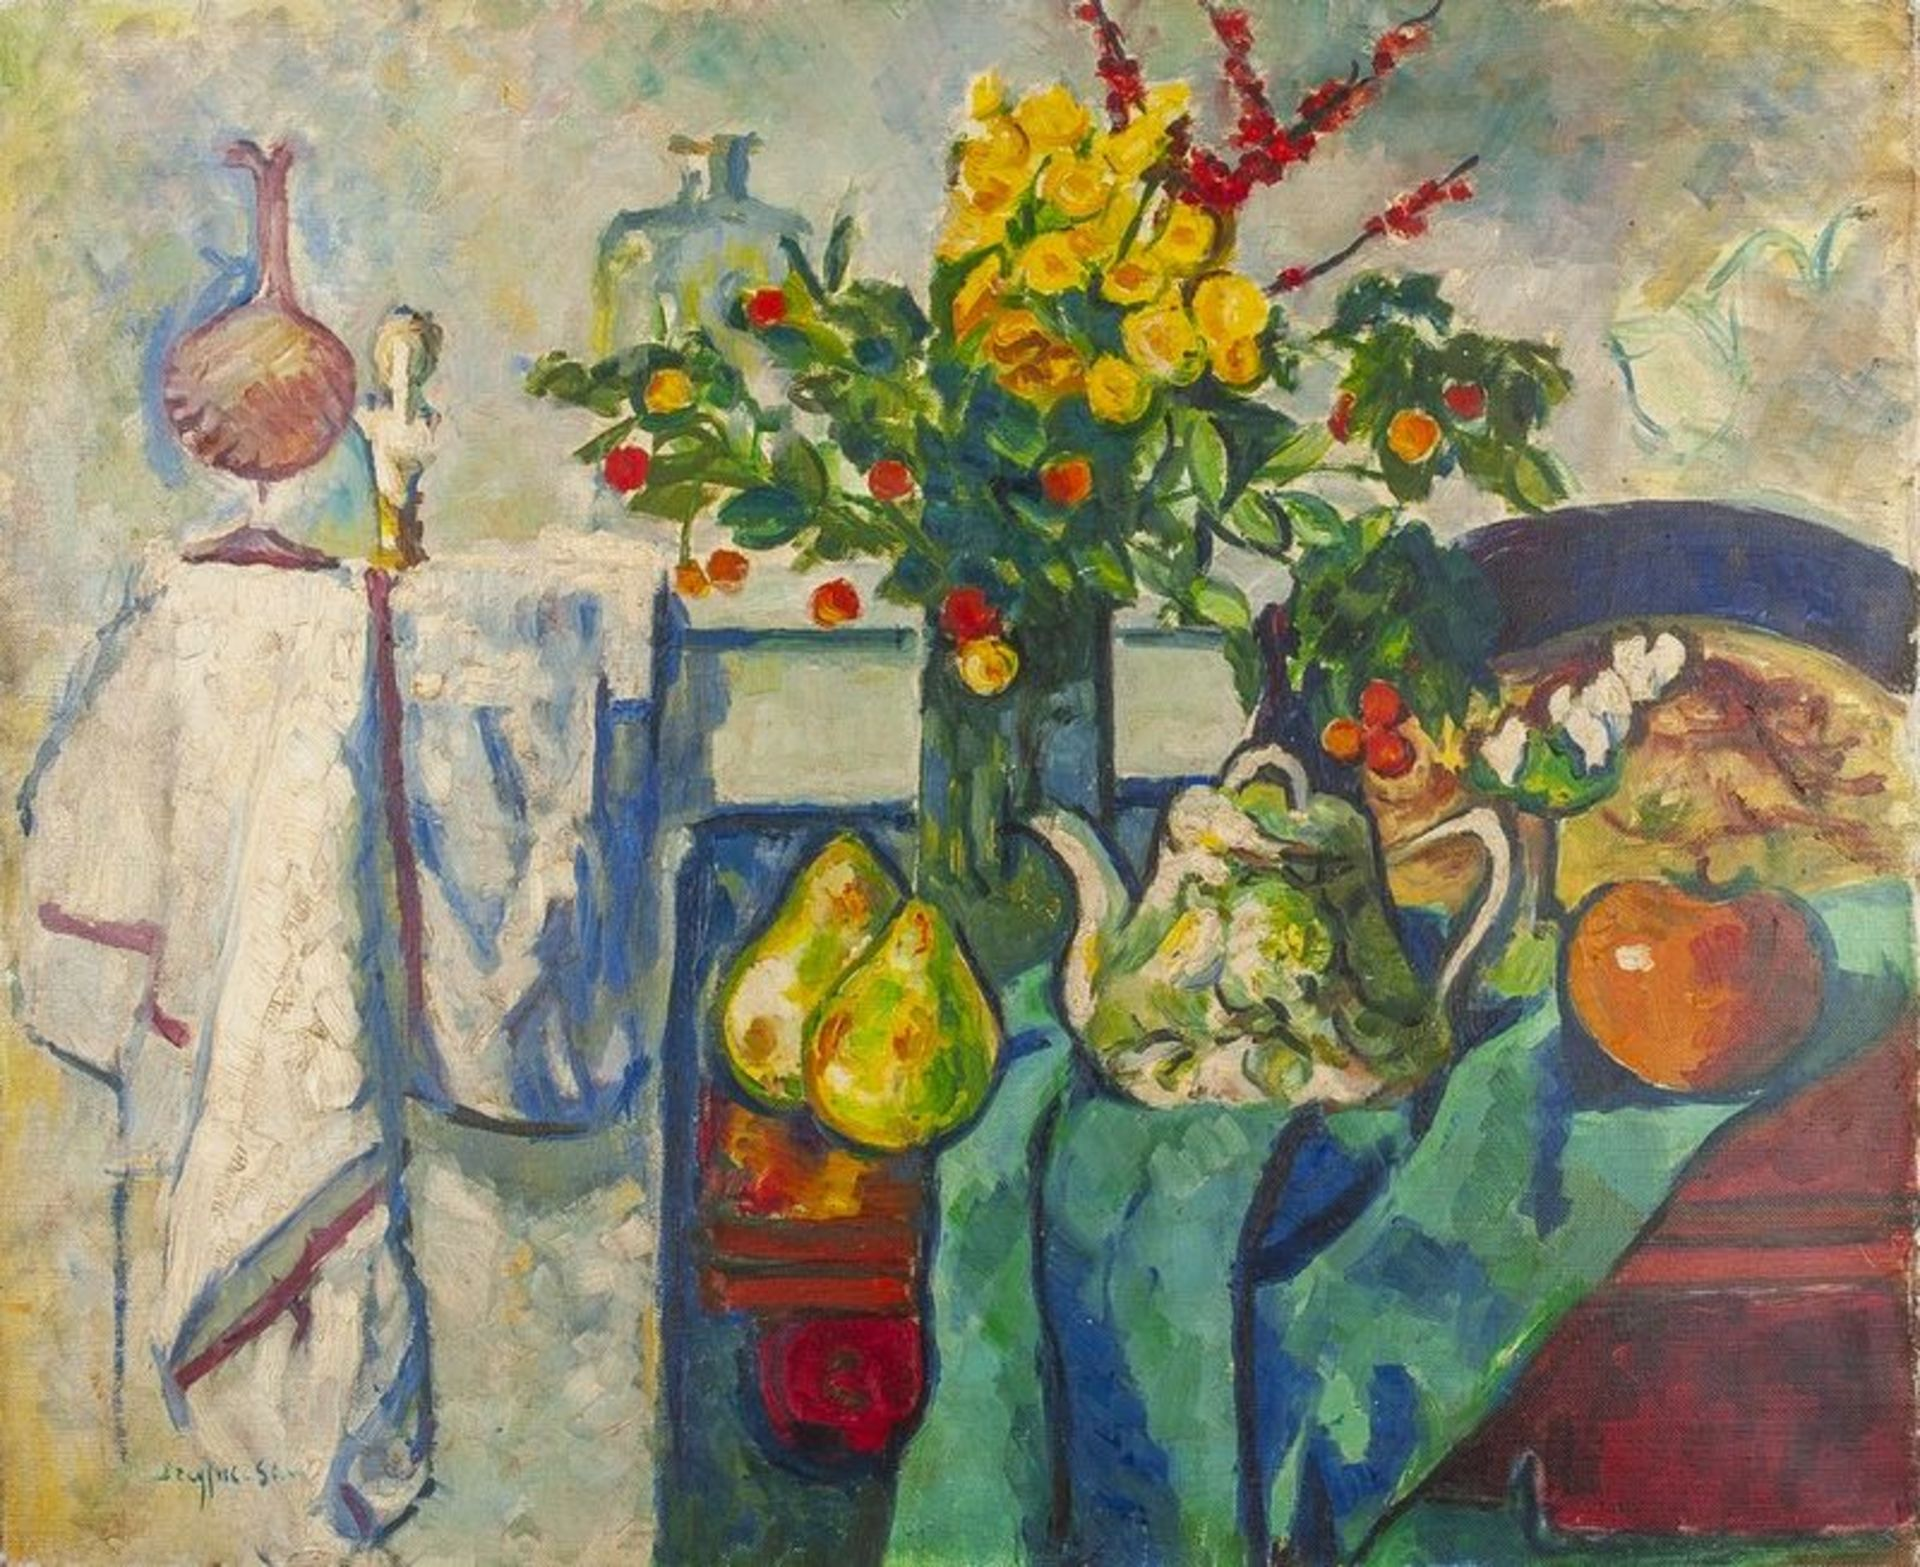 Los 609 - JEAN DREYFUS-STERN (1890-1980) Still life with apple and pears - Signed 'Dreyfus [...]